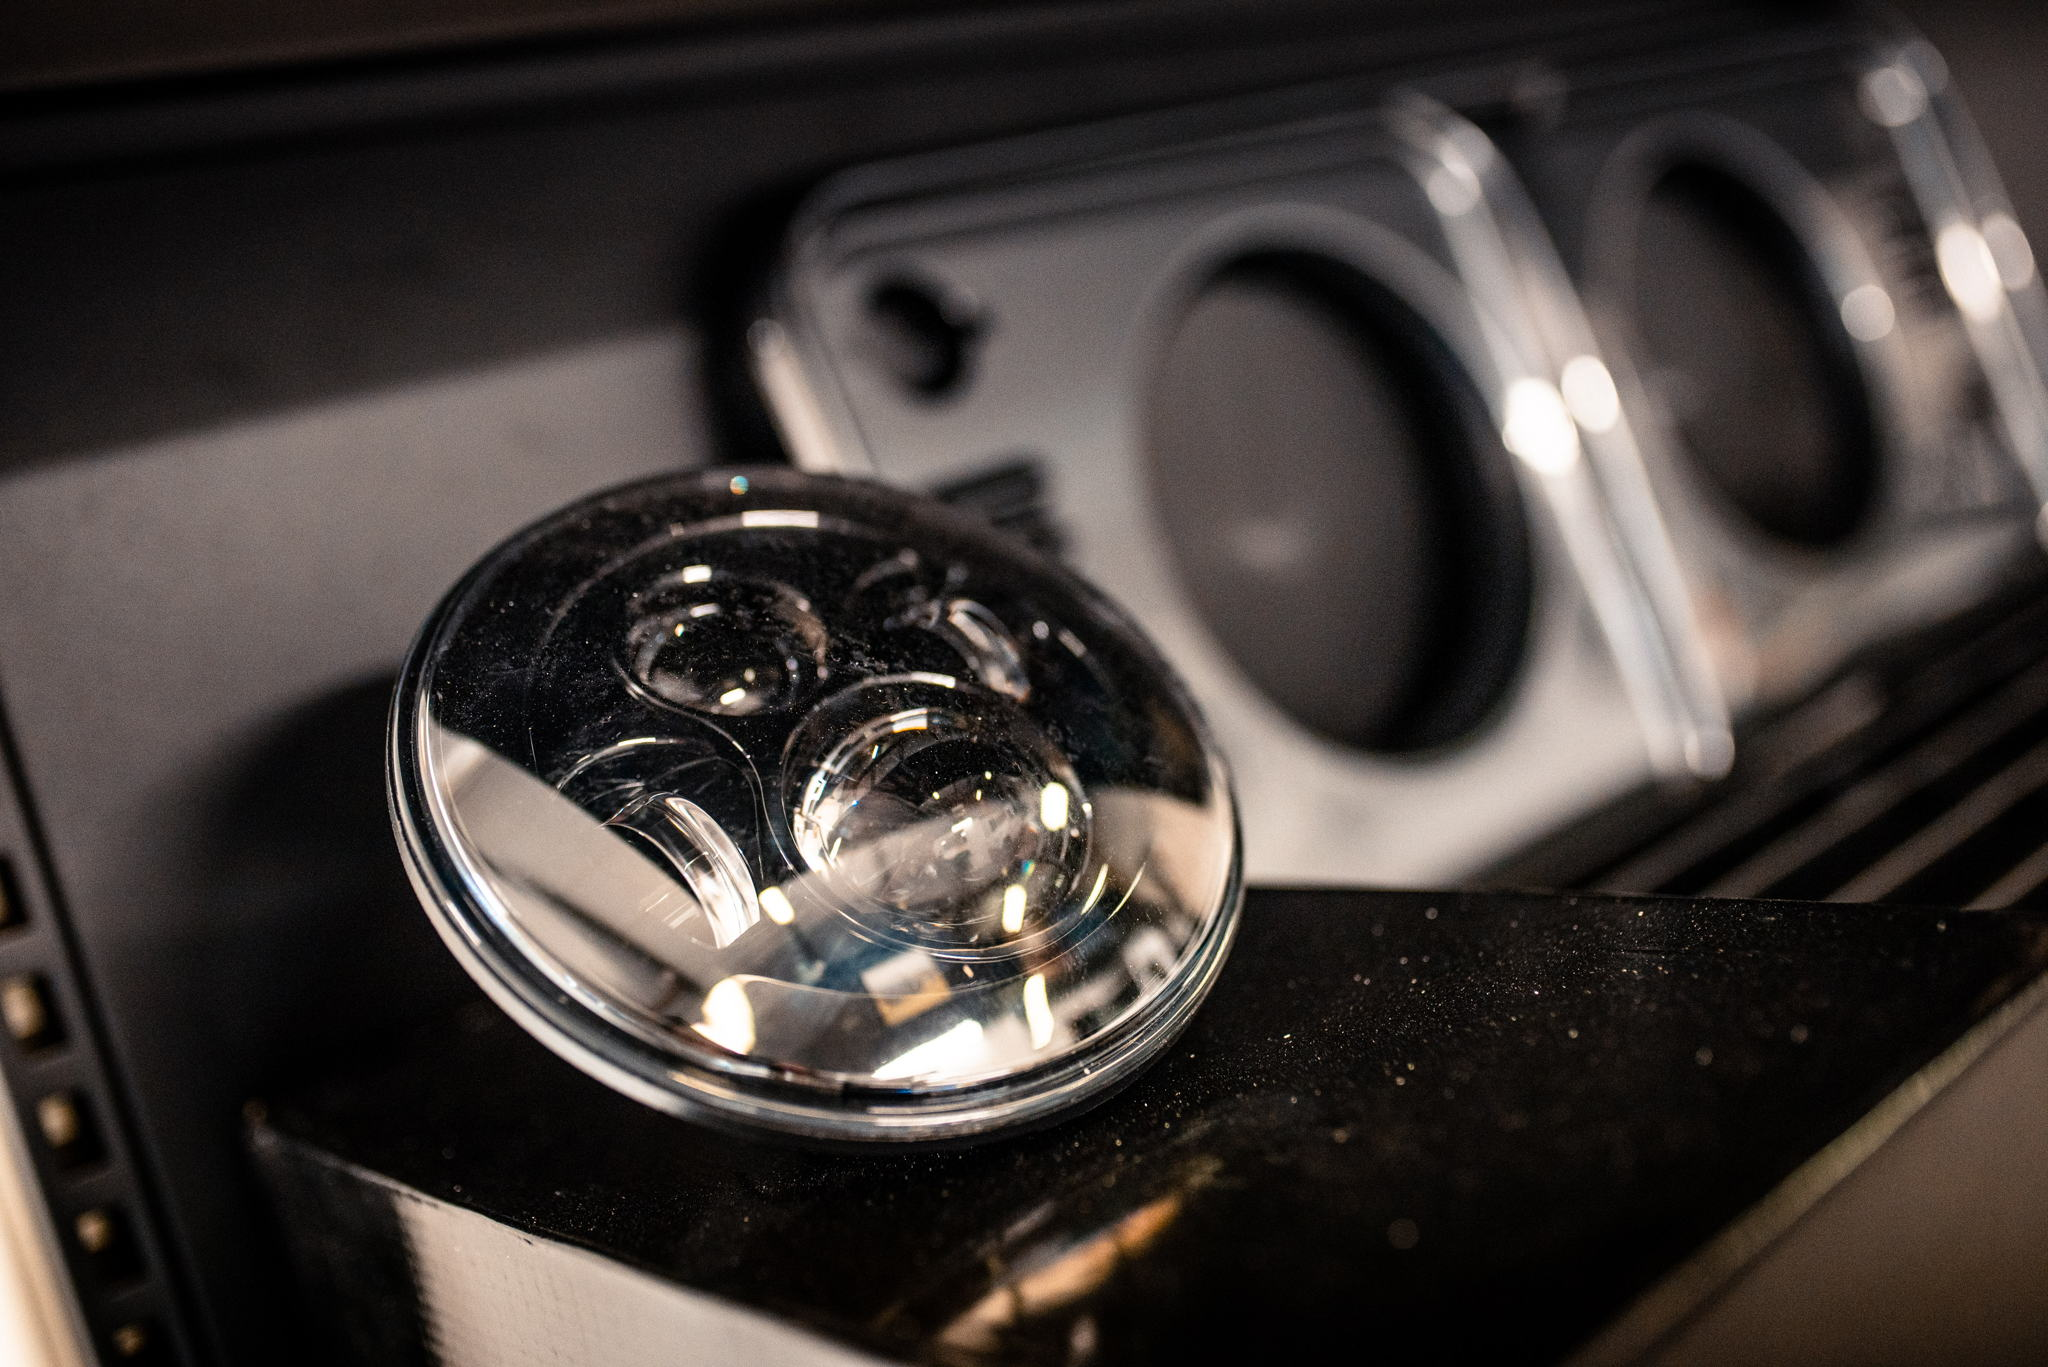 LED HEAD LIGHTS 's featured image